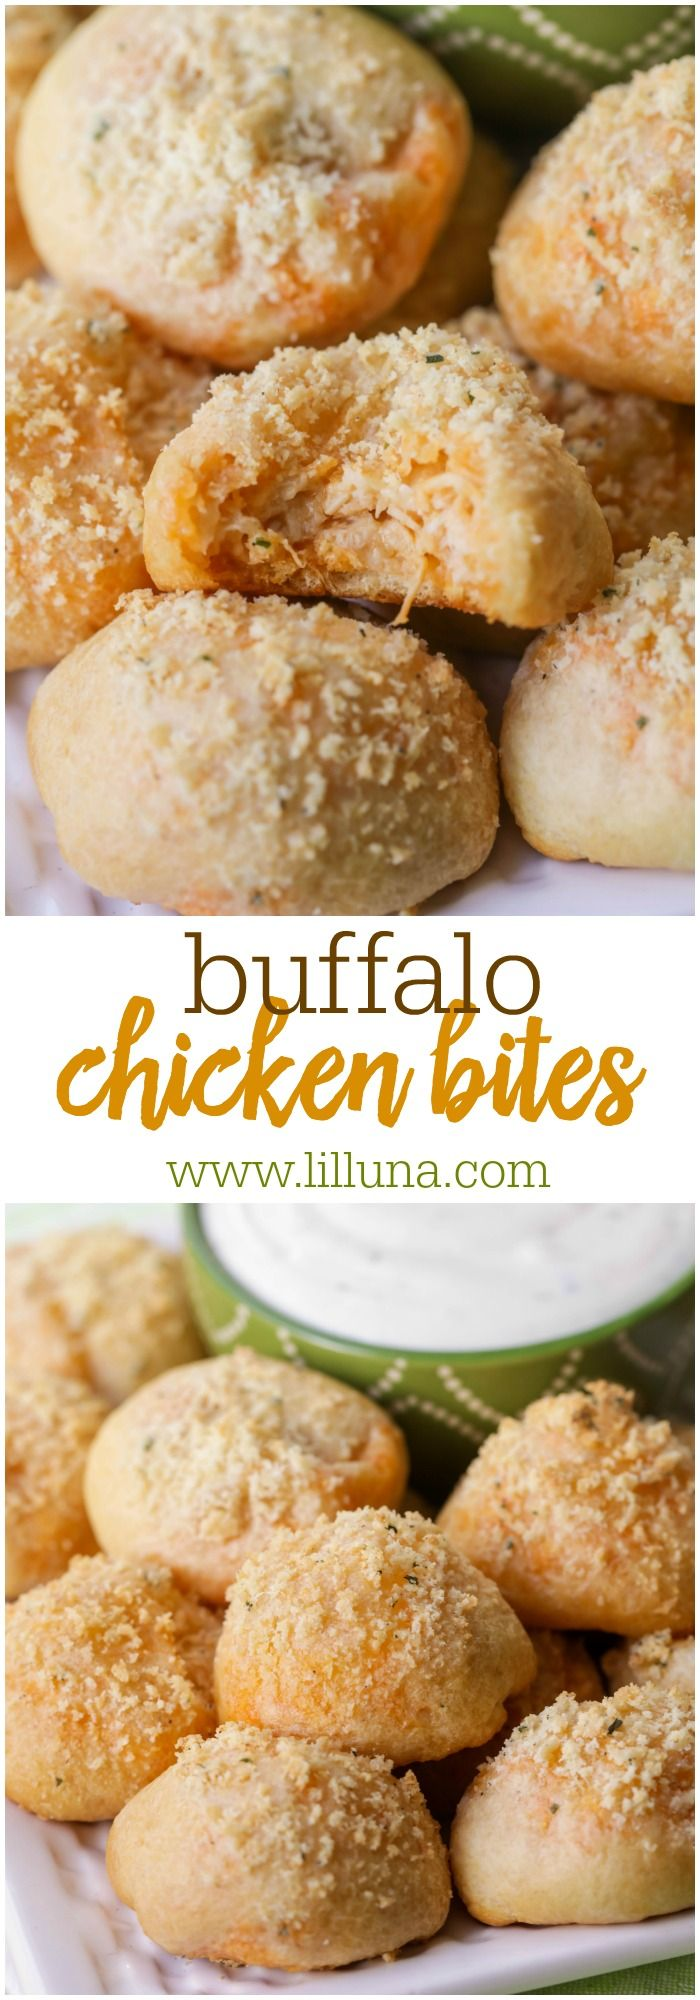 Delicious bite-sized Buffalo Chicken Wing Bites - soft flaky dough stuffed with buffalo chicken and topped with butter and cheese and served with a tasty Bleu Cheese Ranch Dressing.